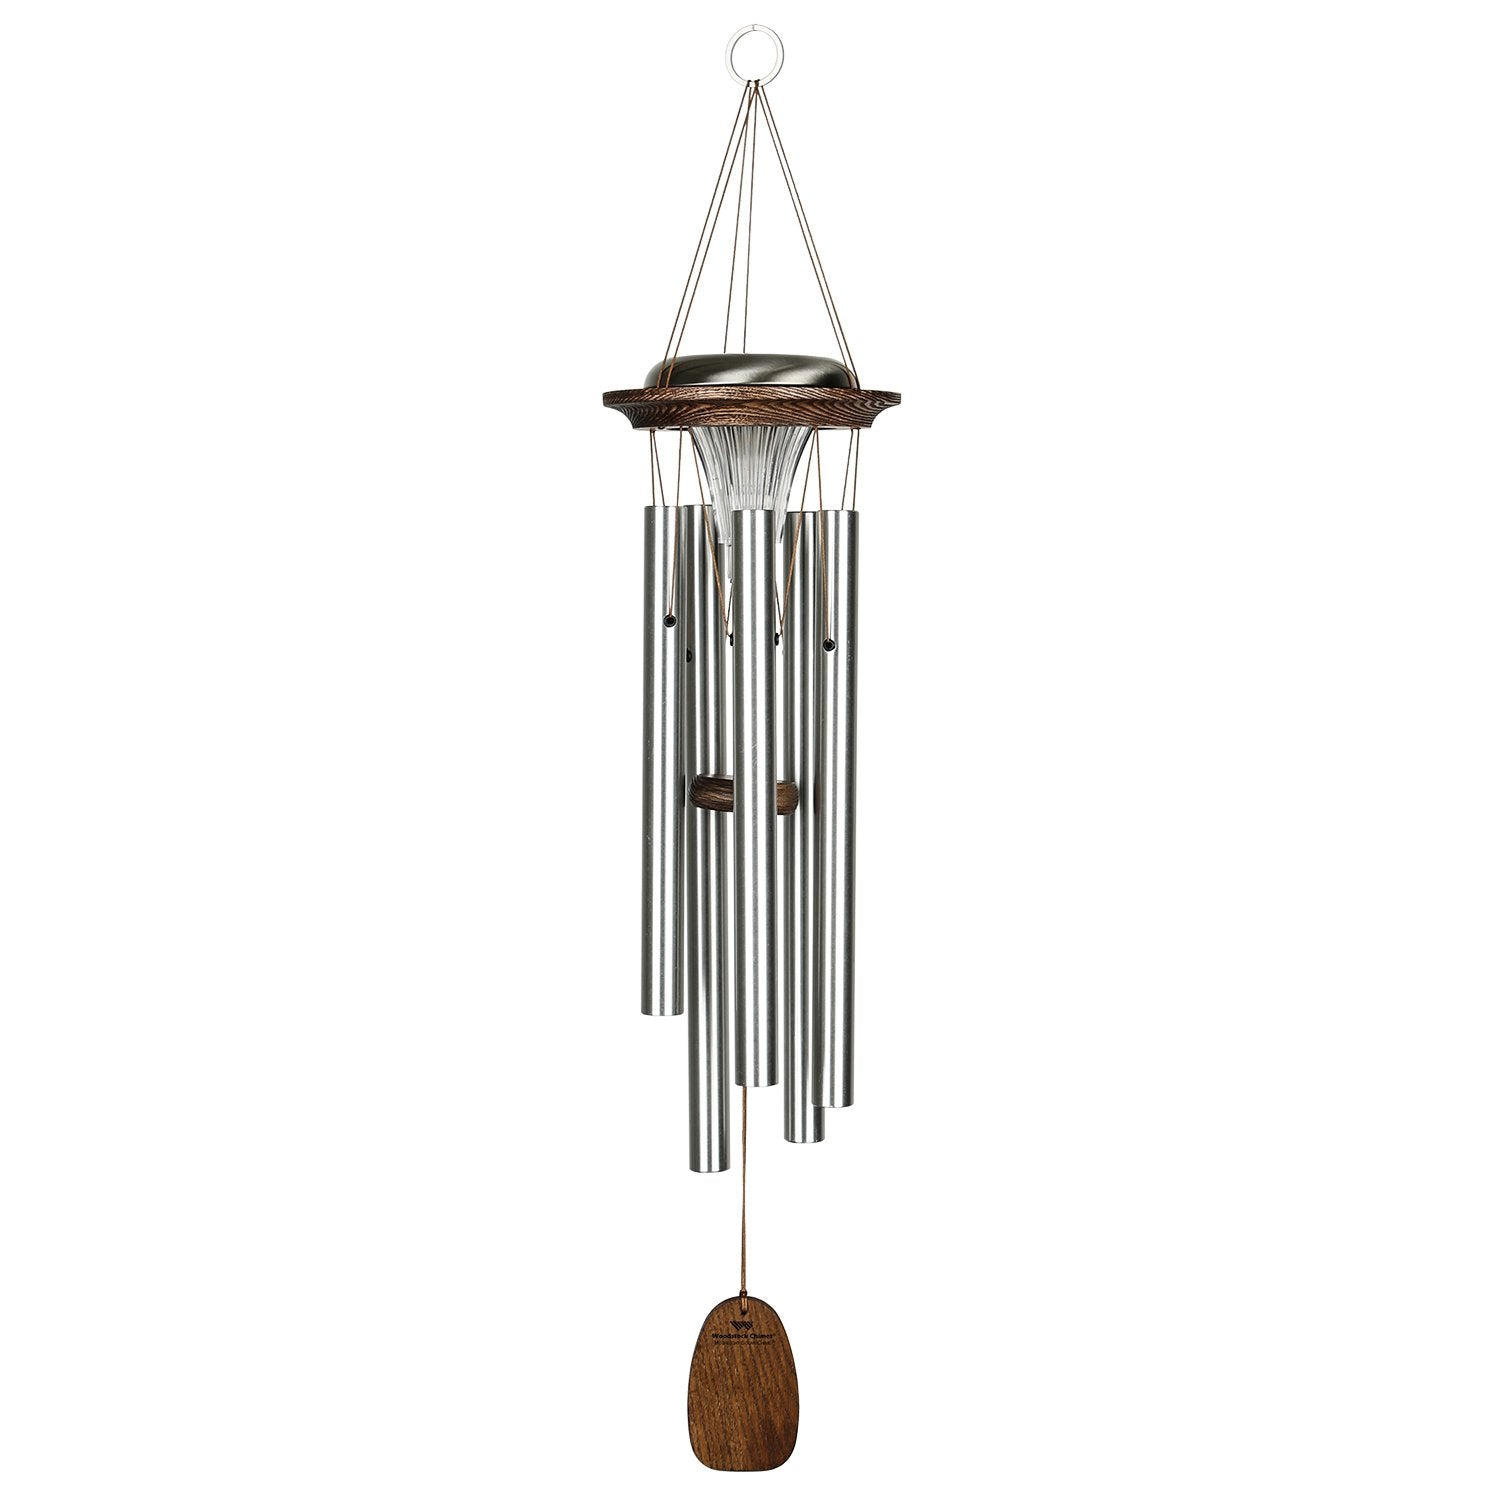 Moonlight Solar Chimes - Silver full product image